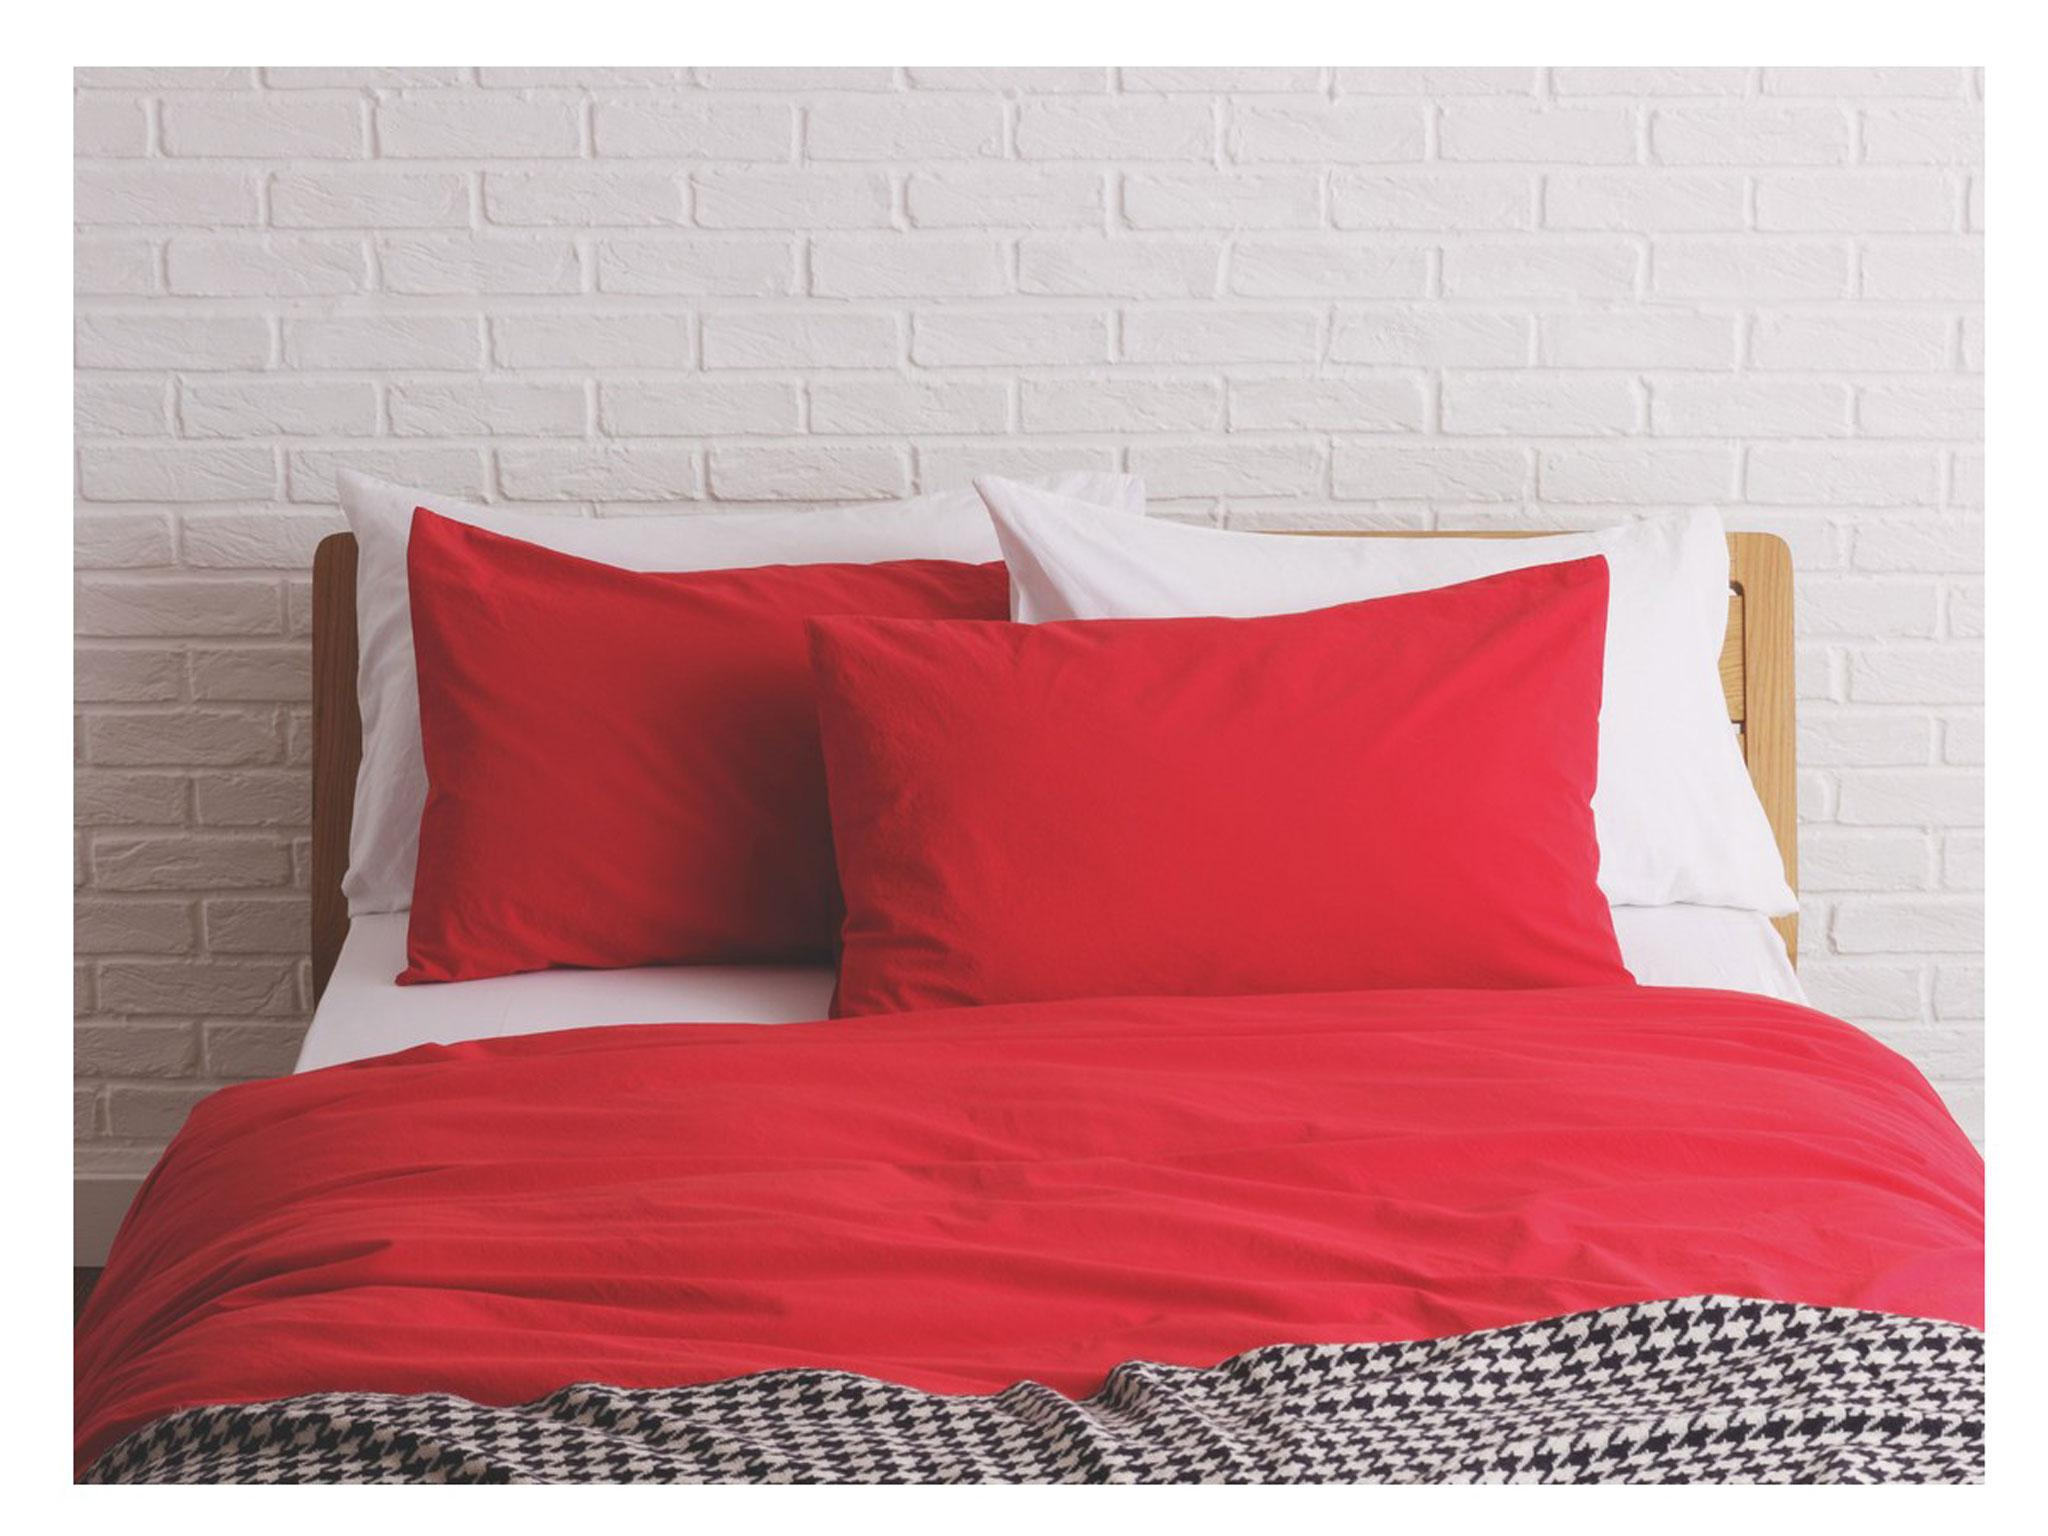 15 best single bedding sets for students | The Independent